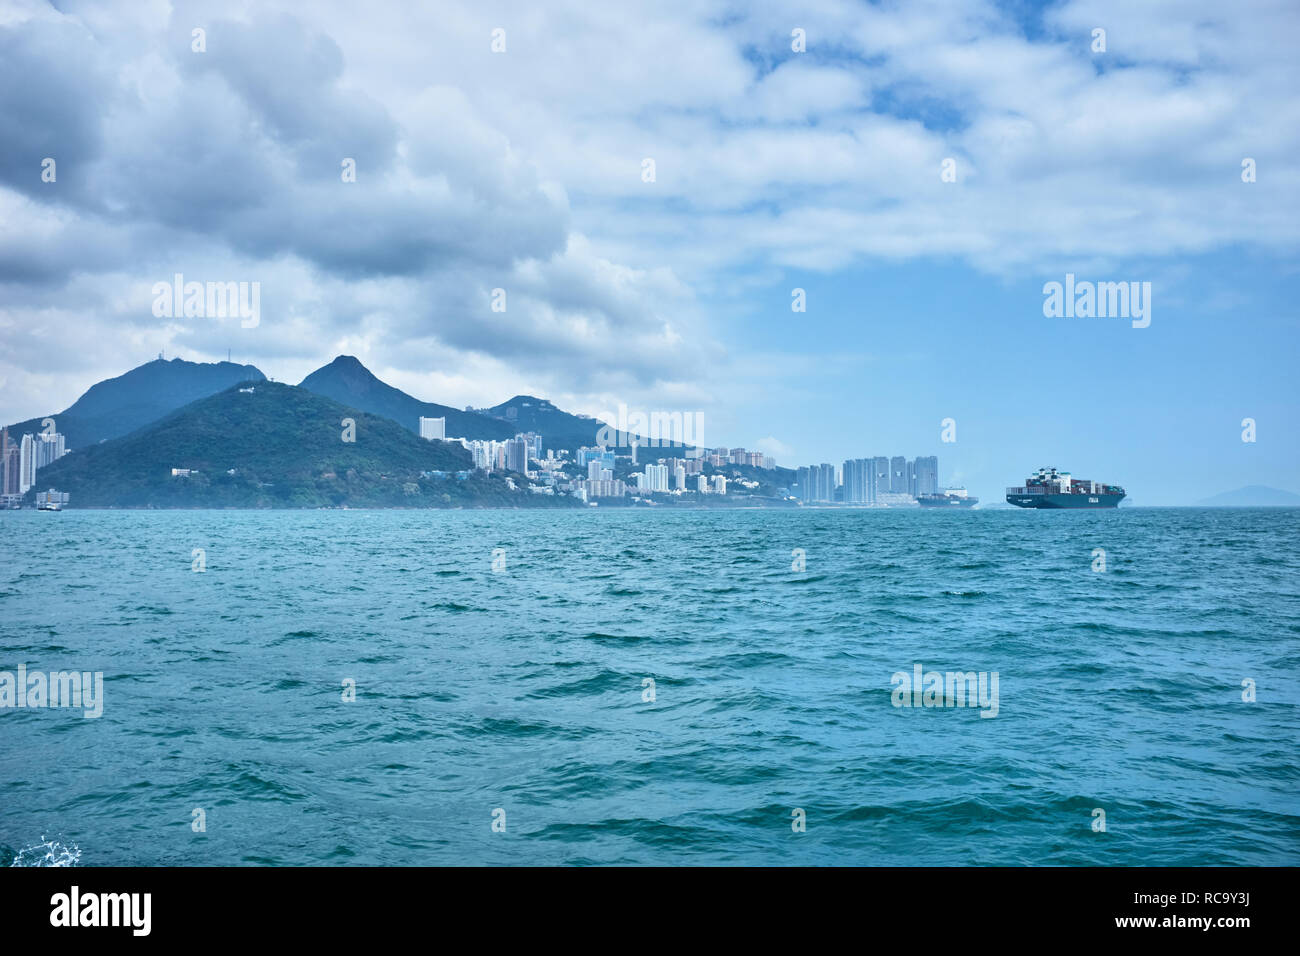 Victoria Harbor, Hong Kong - Stock Image